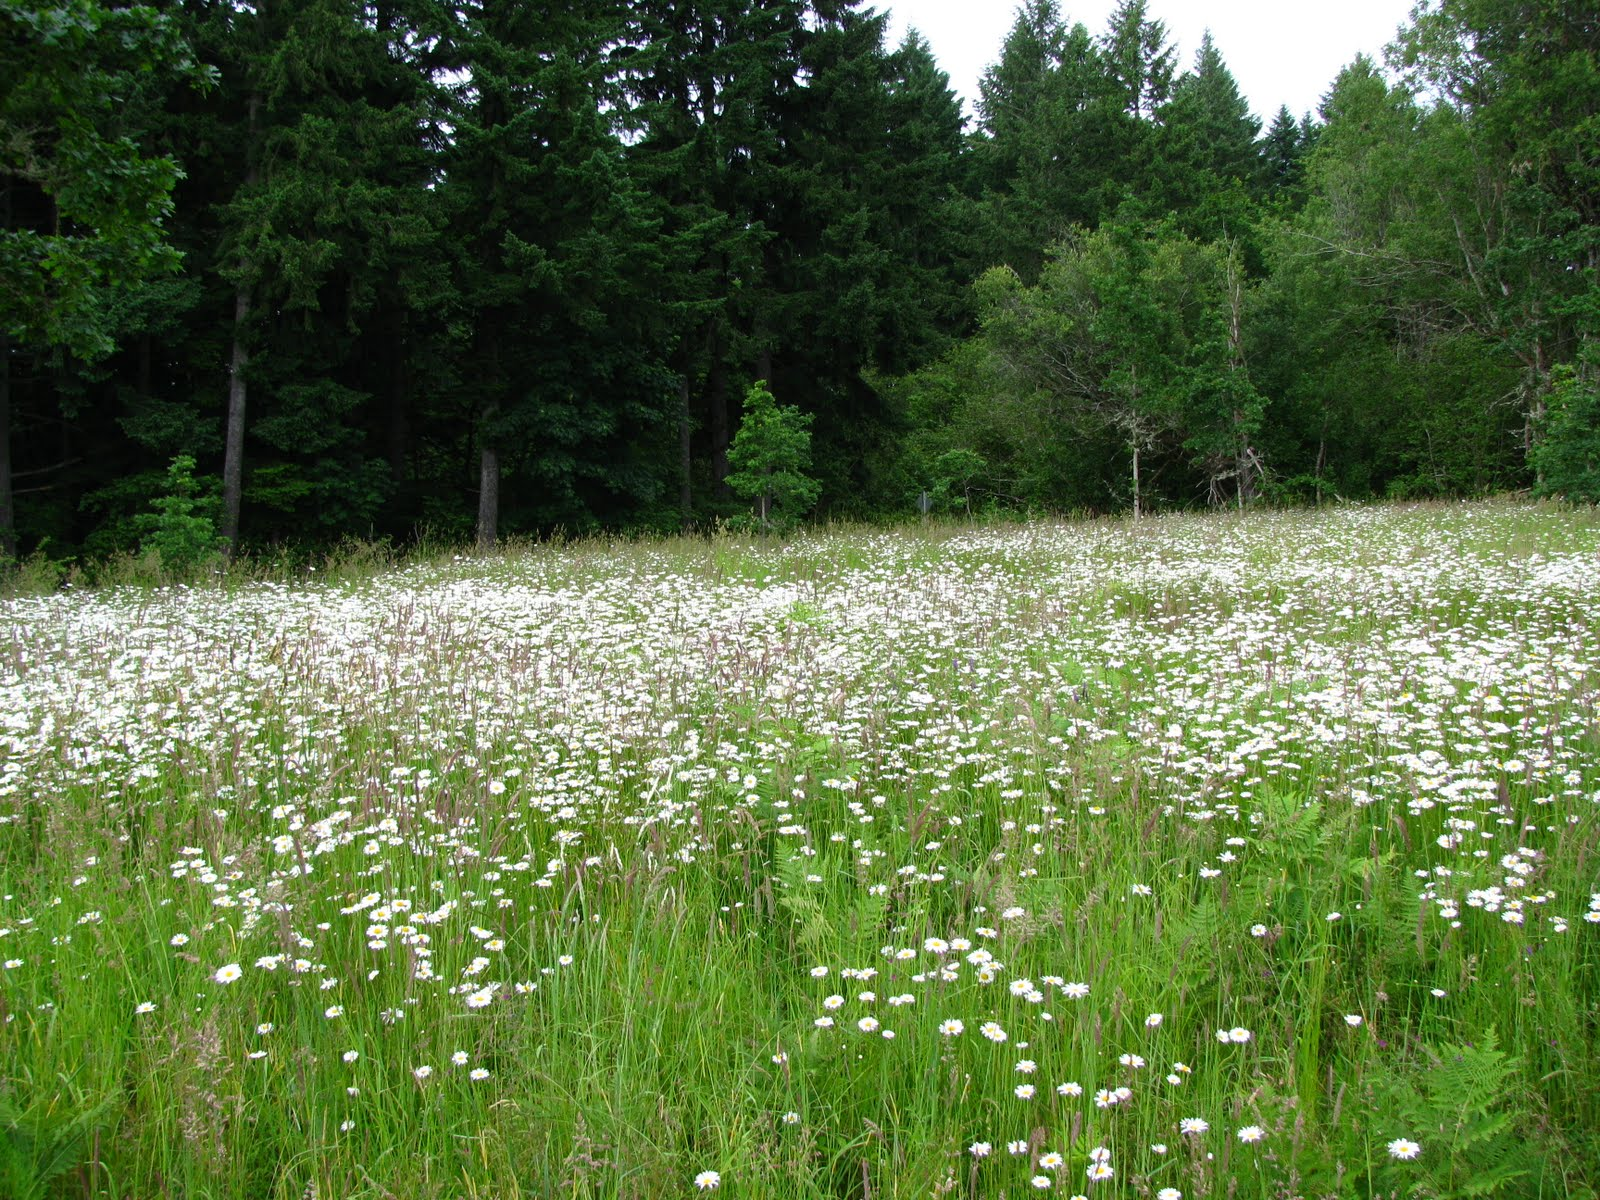 The Abandoned: July 2010 Field Of Daisies